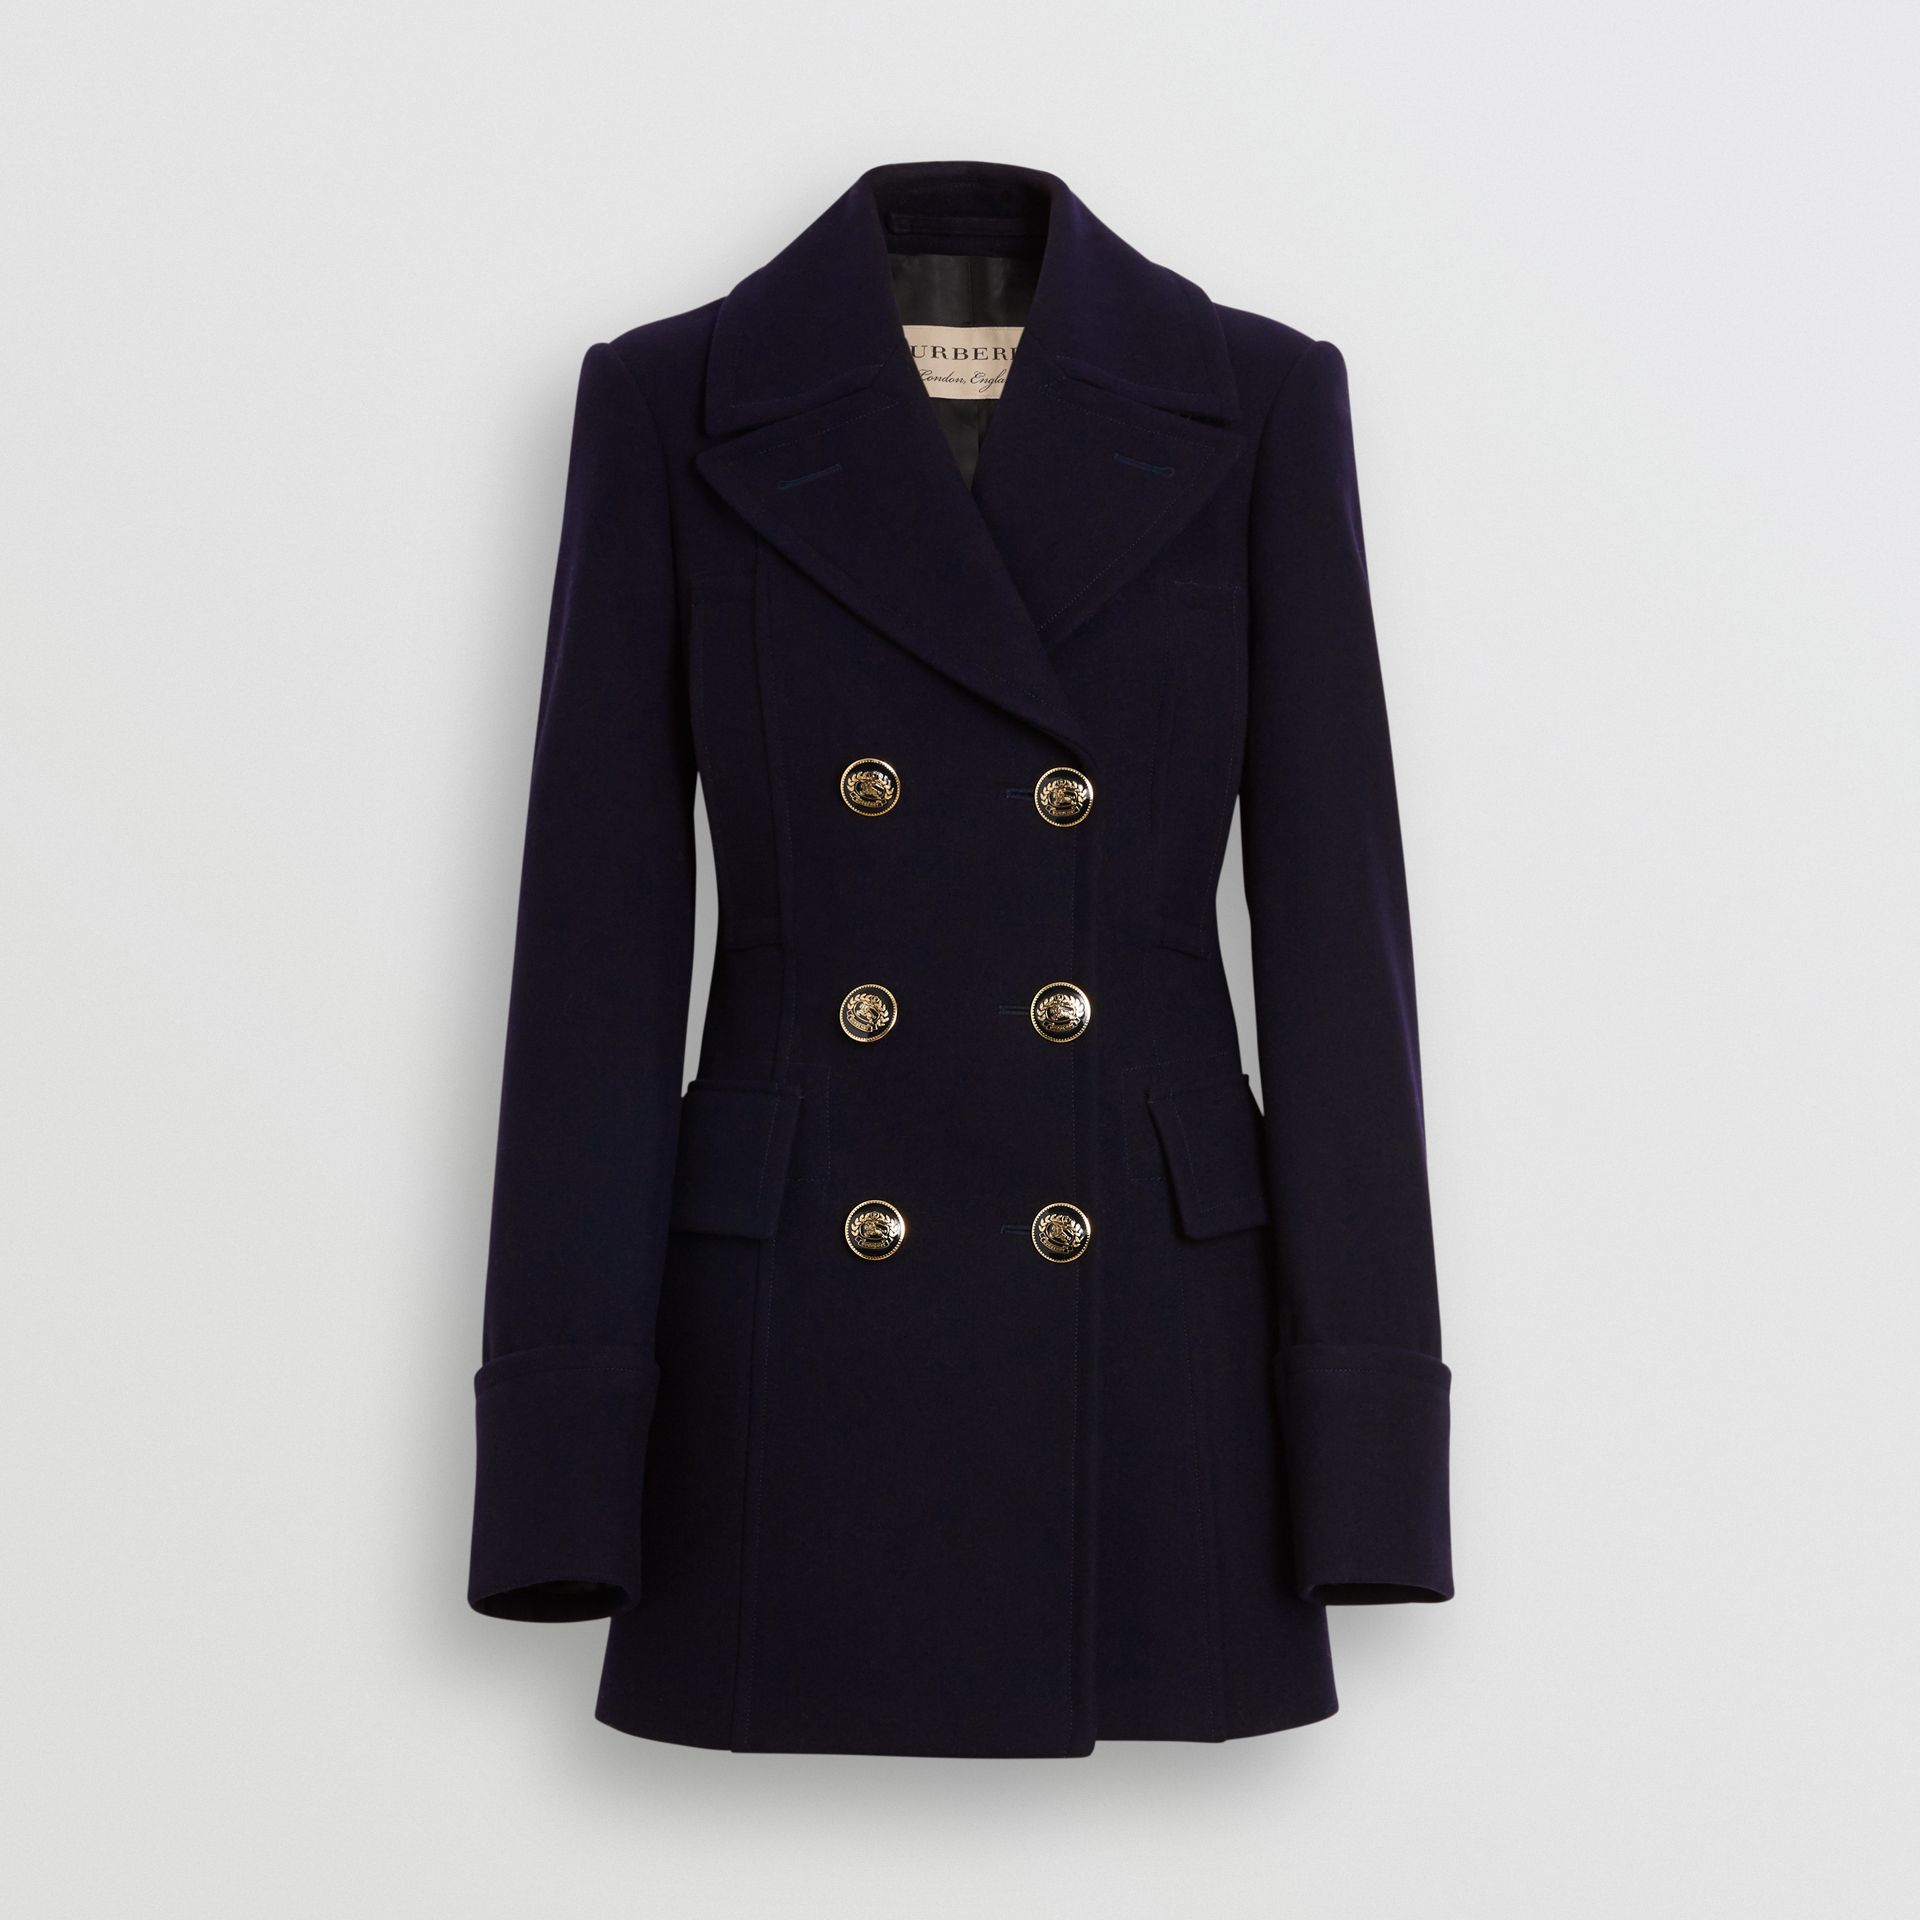 Doeskin Wool Tailored Pea Coat in Navy - Women | Burberry - gallery image 1